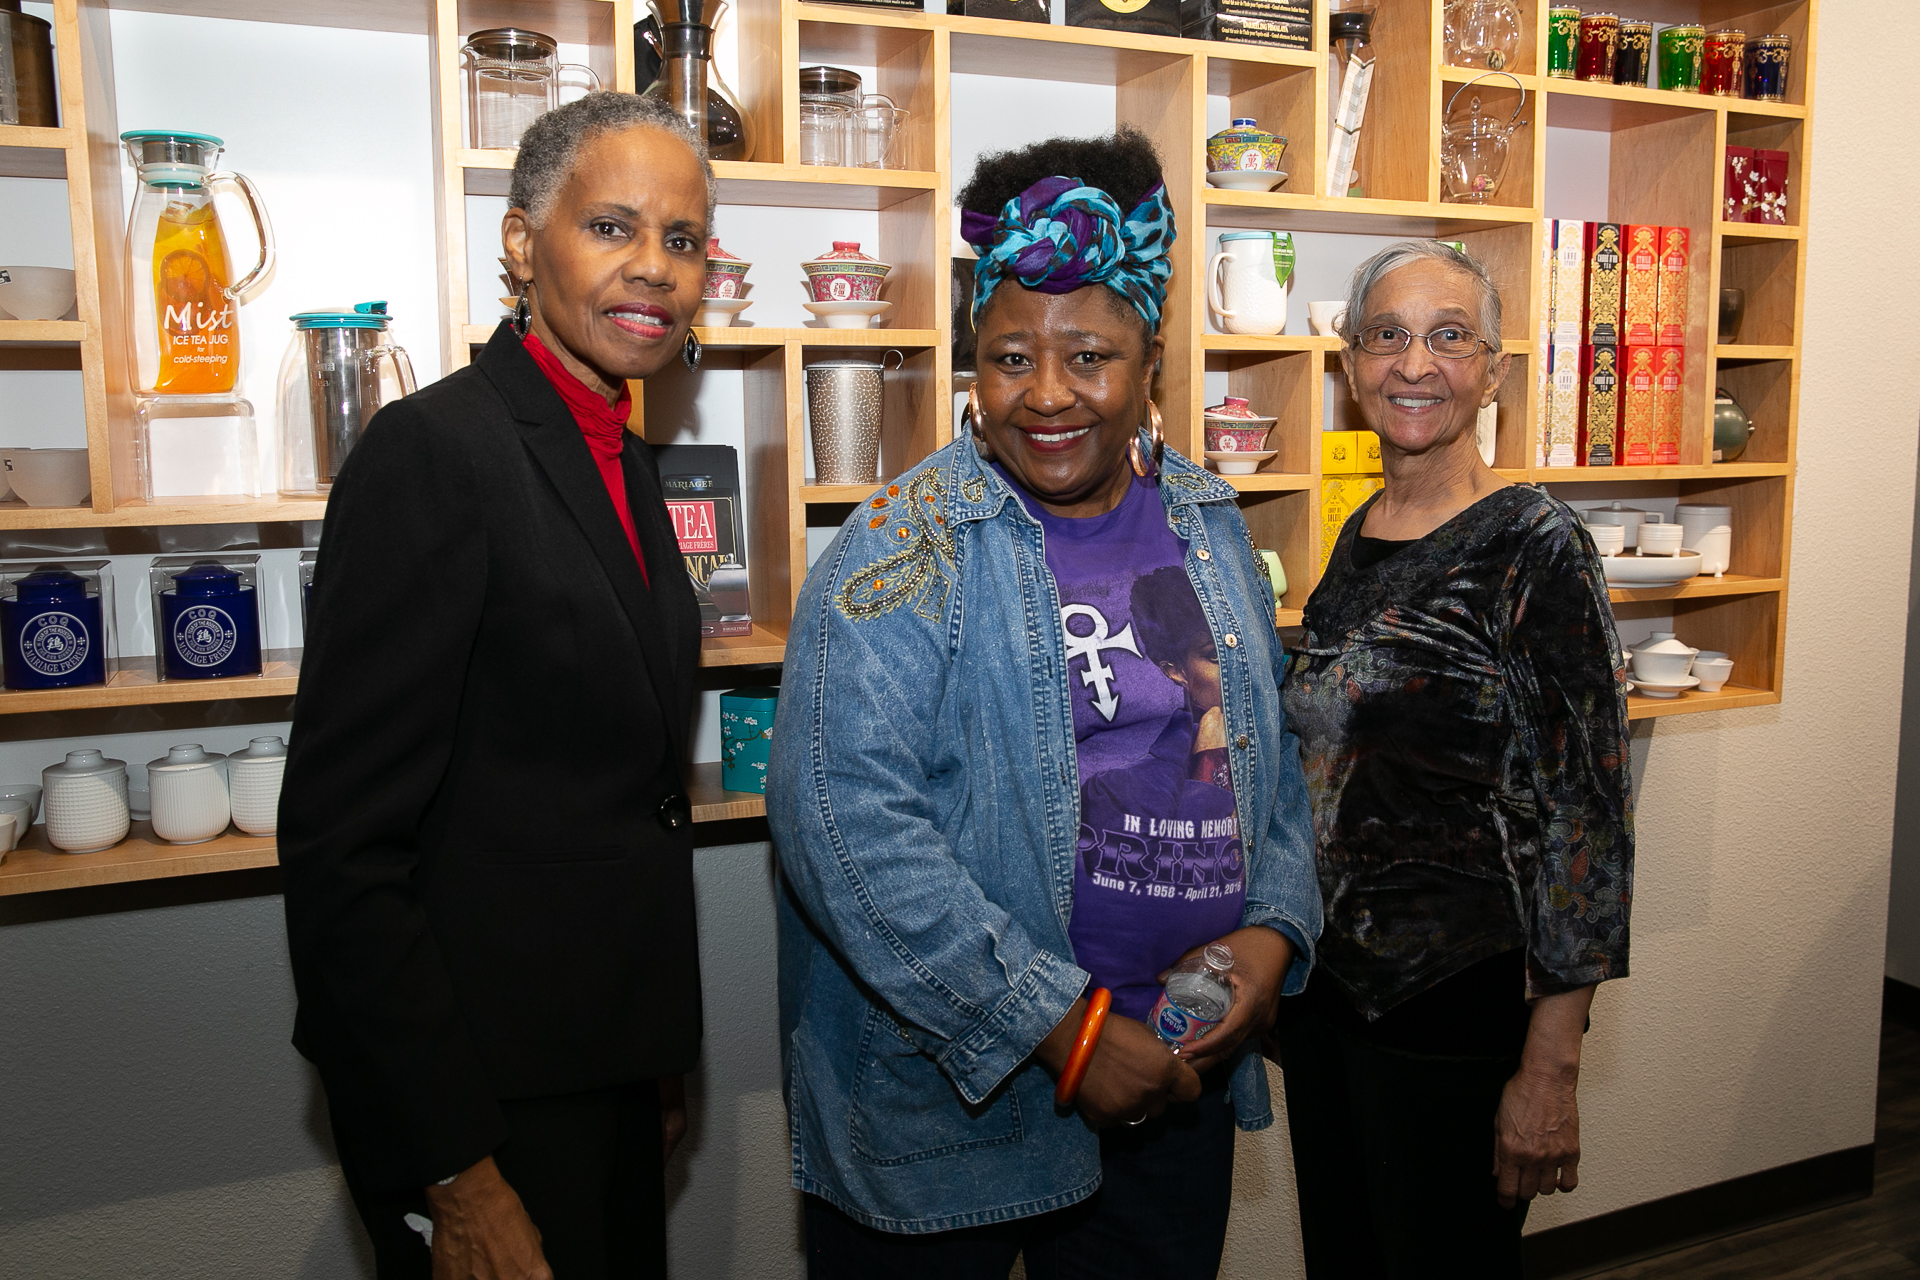 Raphael Morgan '71, Connie Payton-Nevels '70 and Joy Barbarin '68